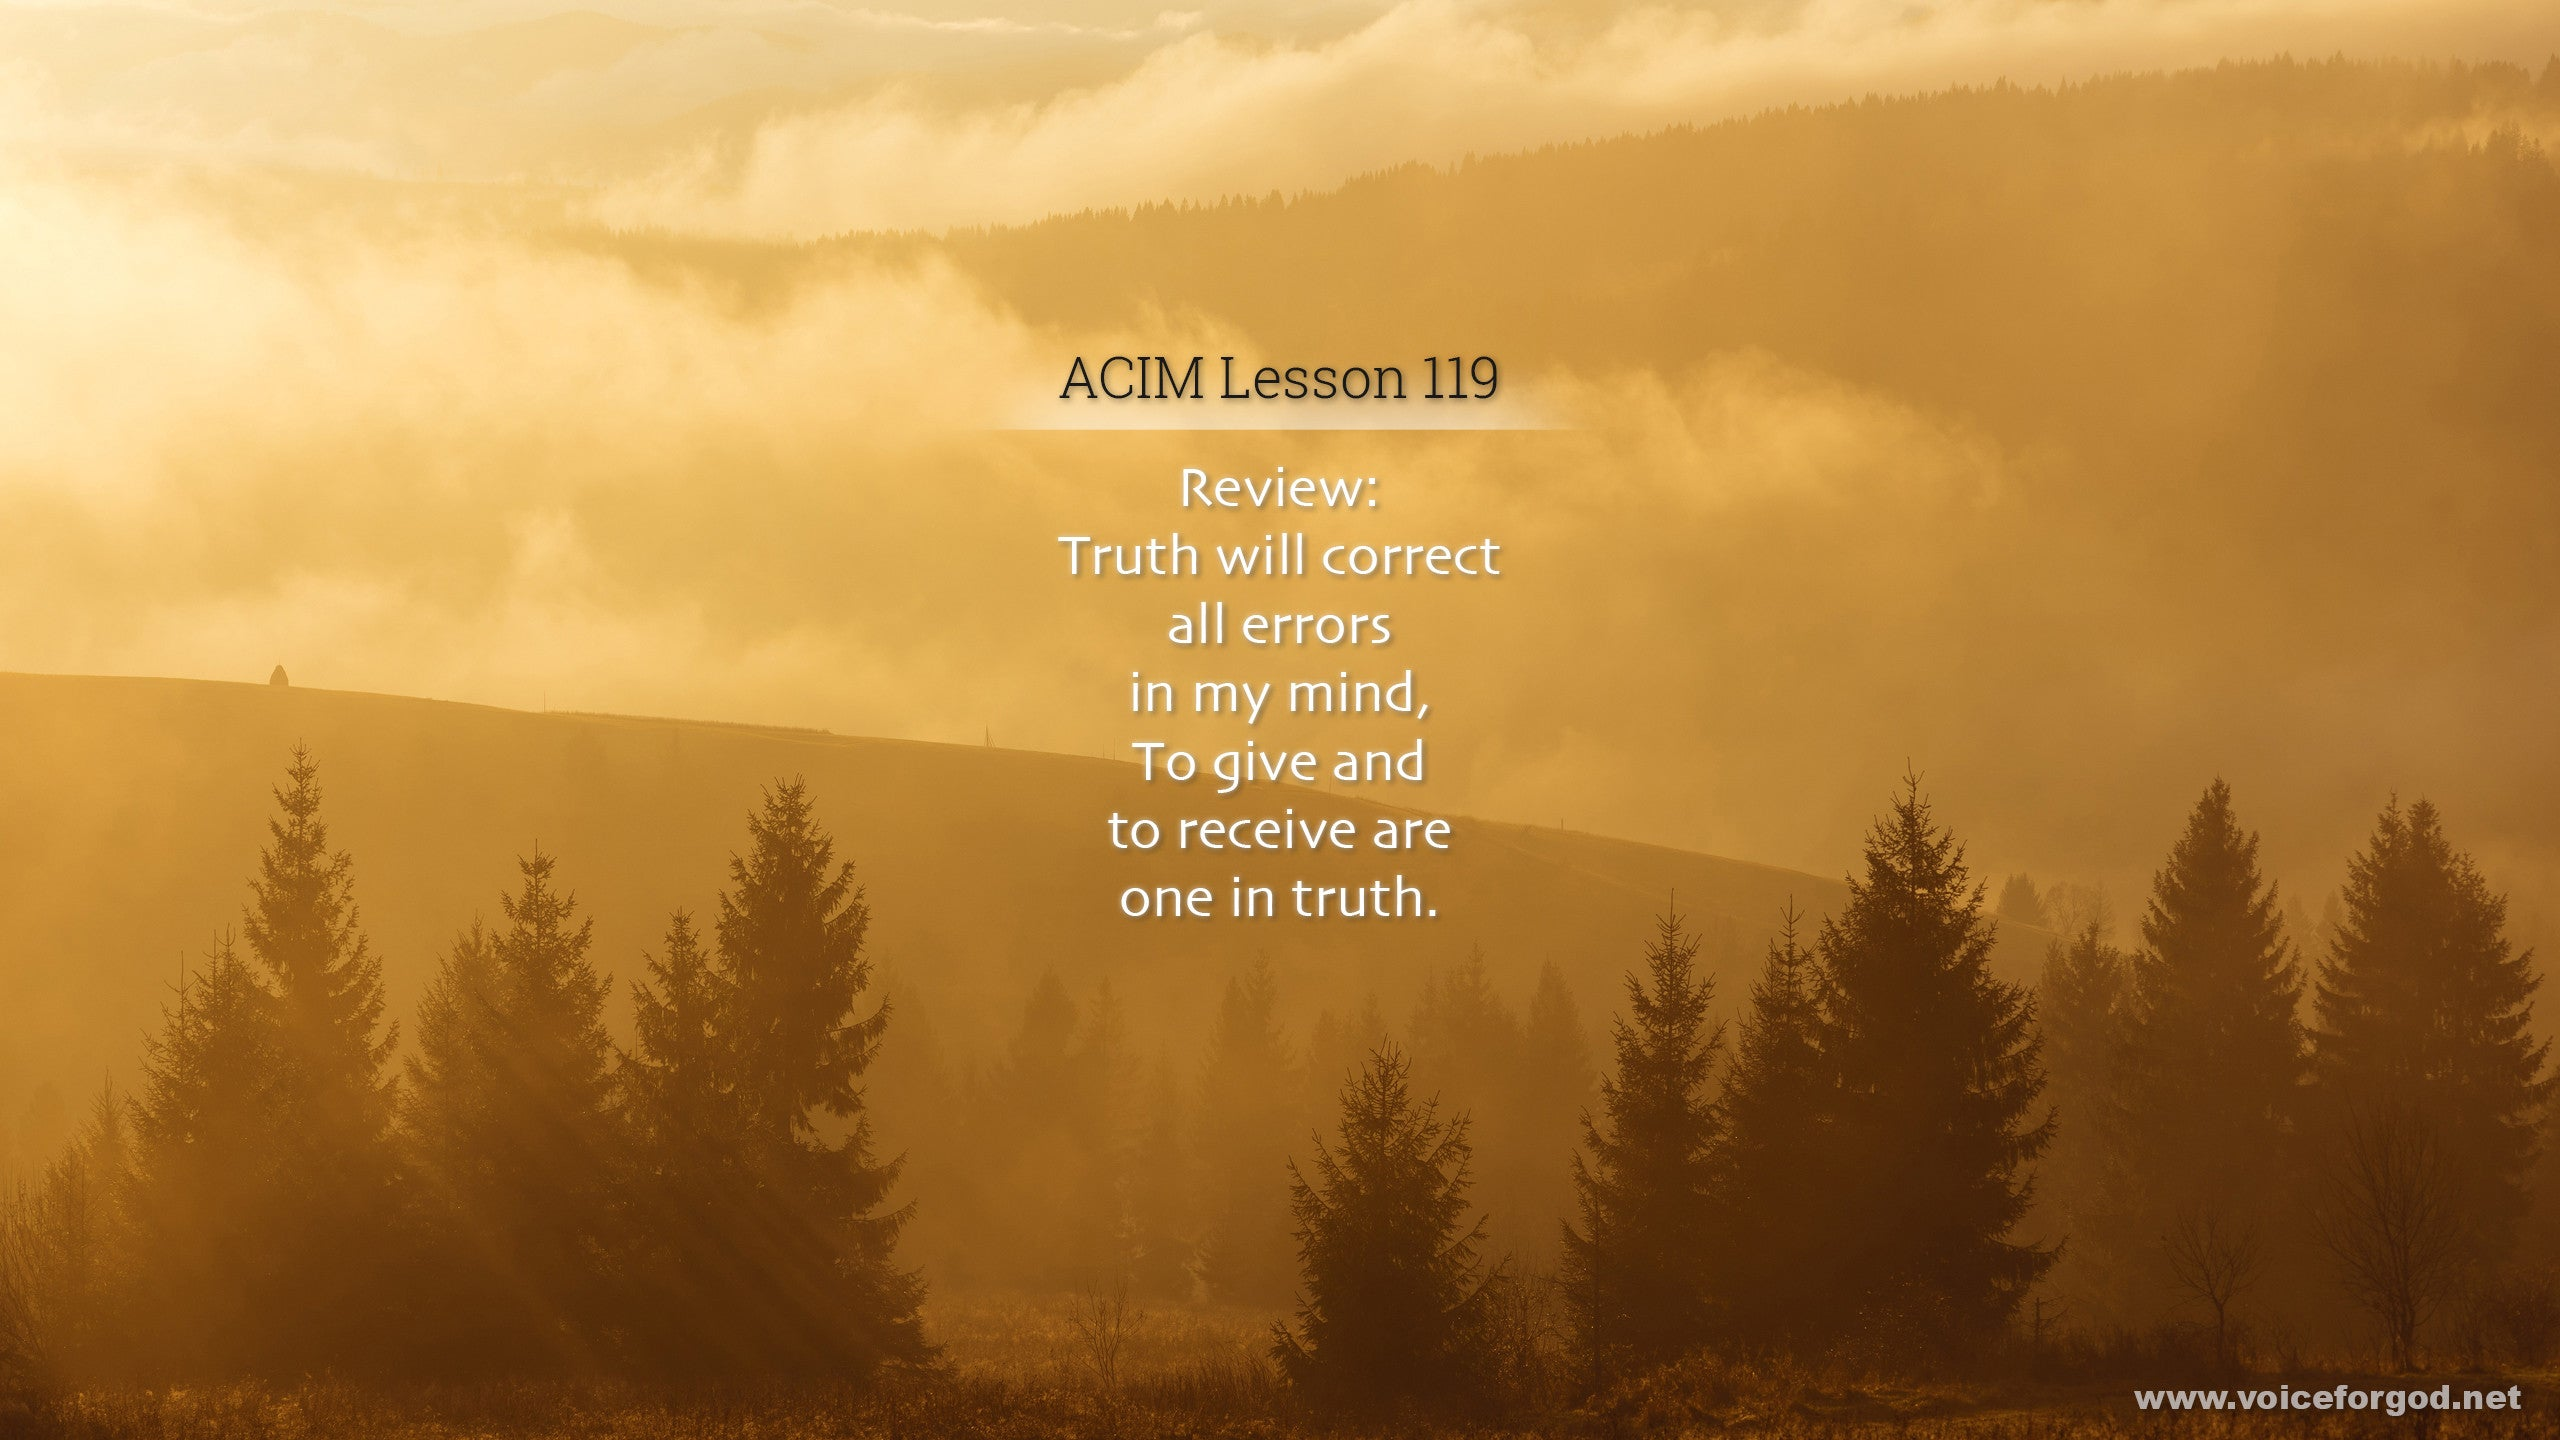 ACIM Lesson 119 - A Course in Miracles Workbook Lesson 119